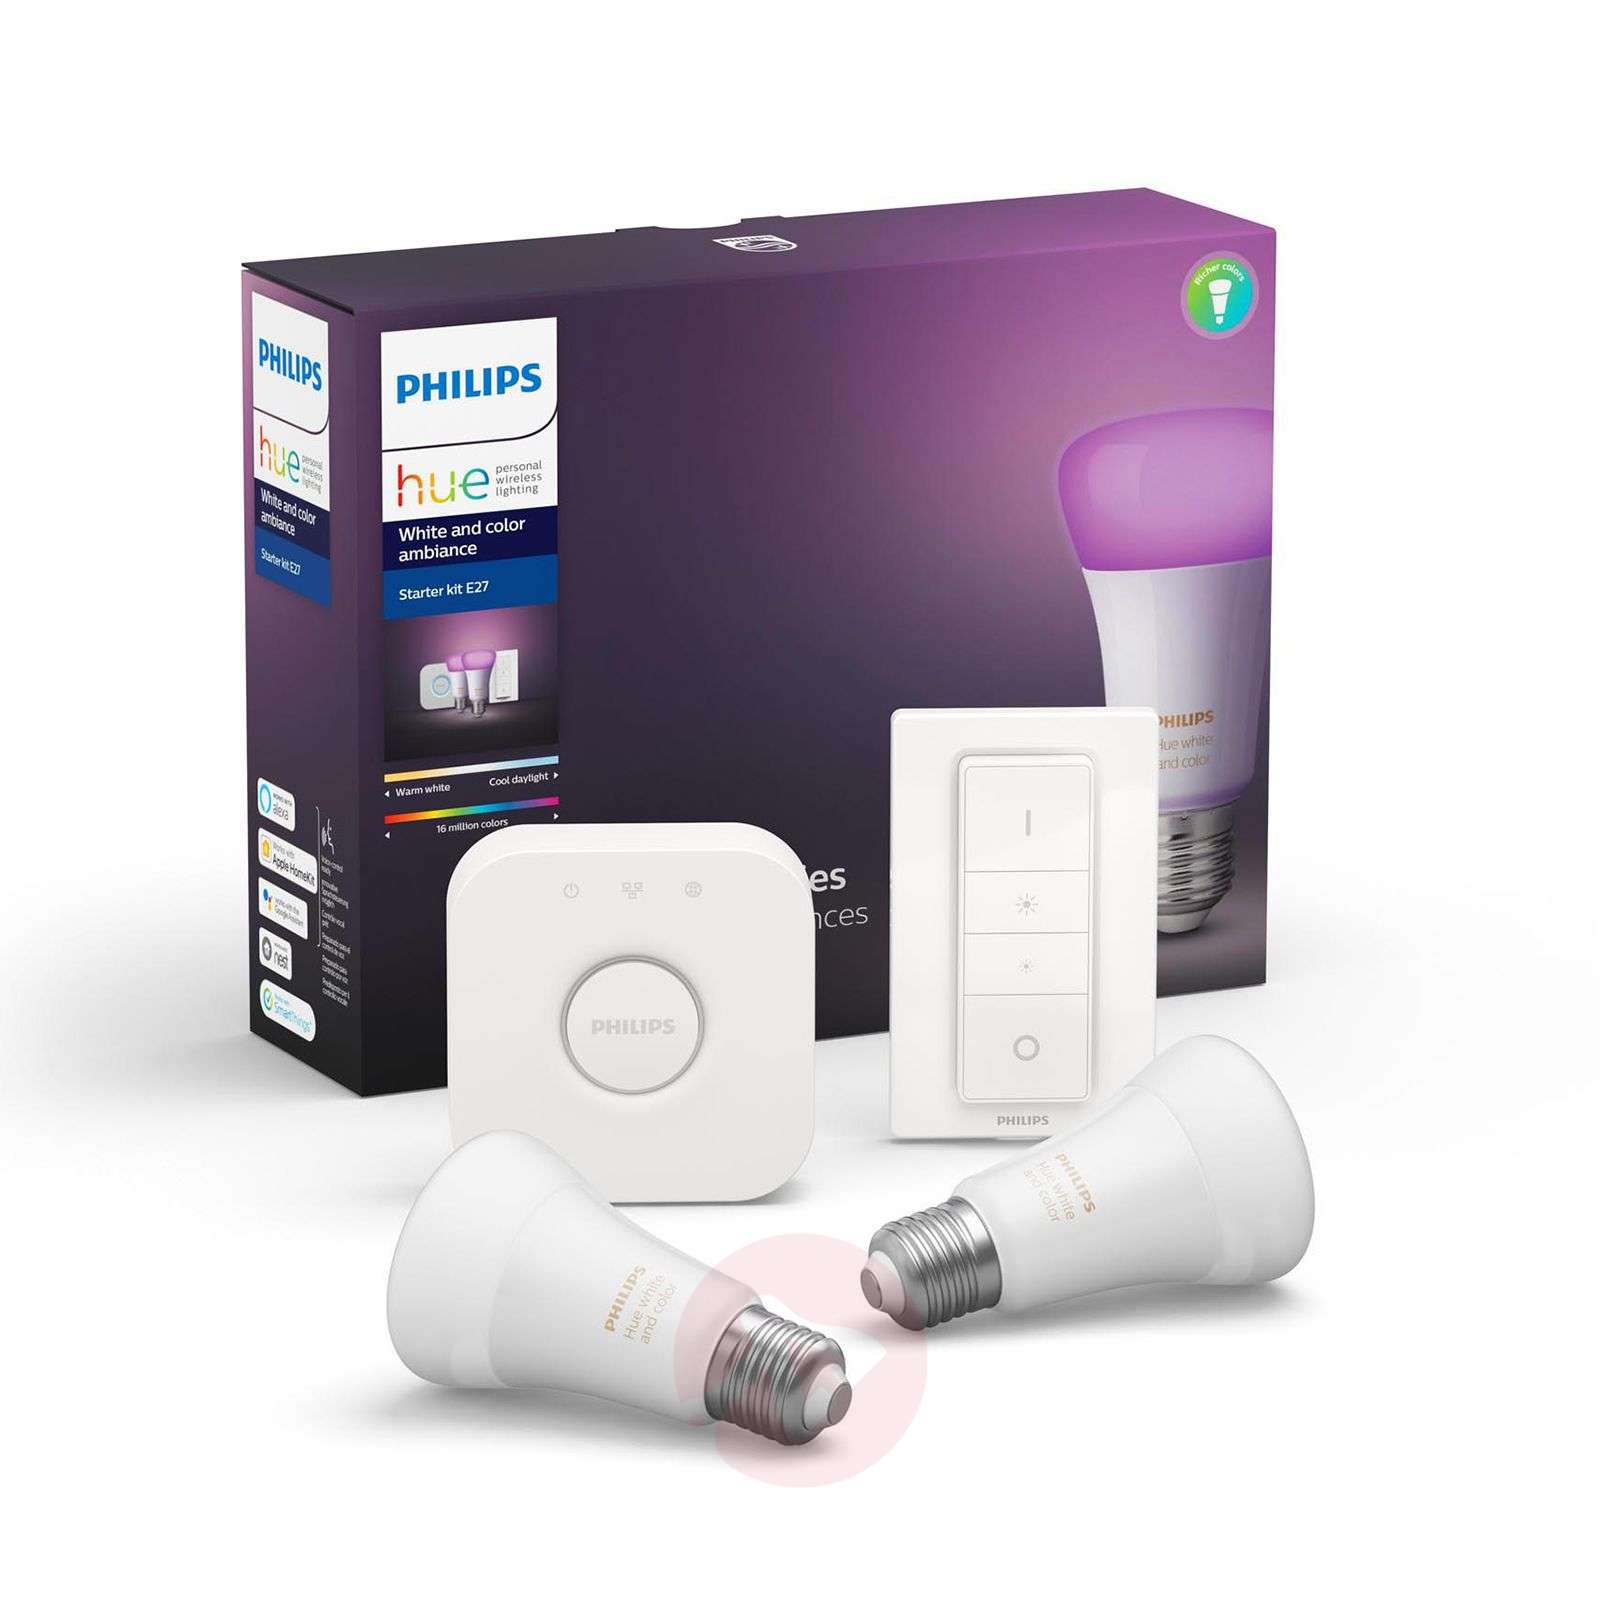 Philips Hue White and Color Ambiance E27 Starter-Kit-7534165-01